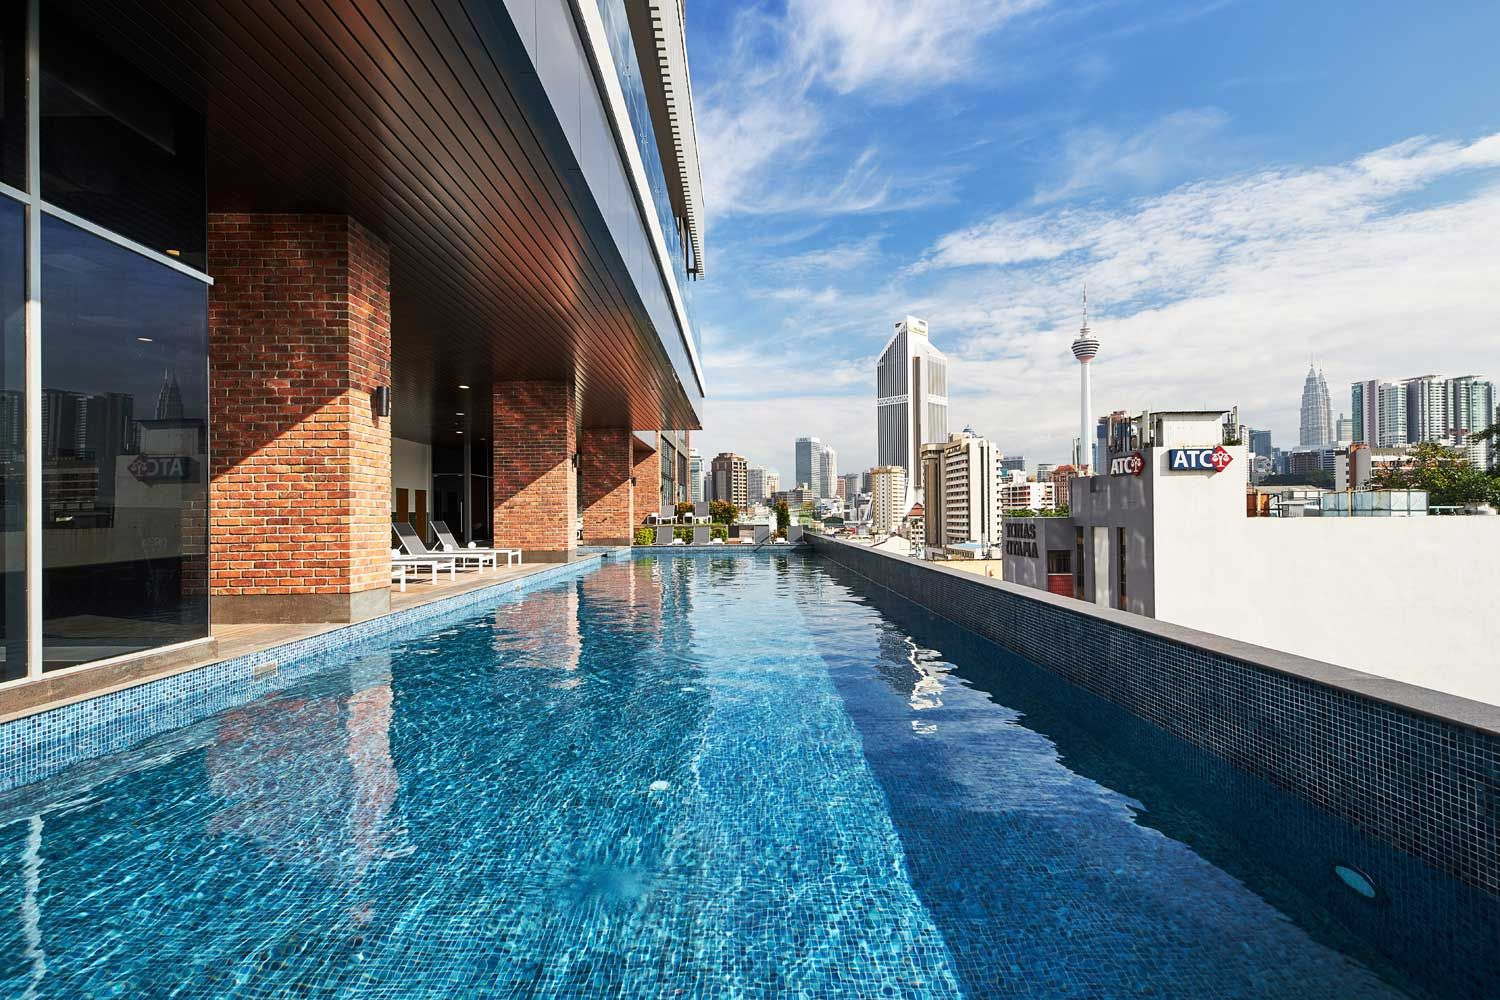 8 Luxe Hotel Deals In Malaysia For A Merdeka 2020 Weekend Staycation